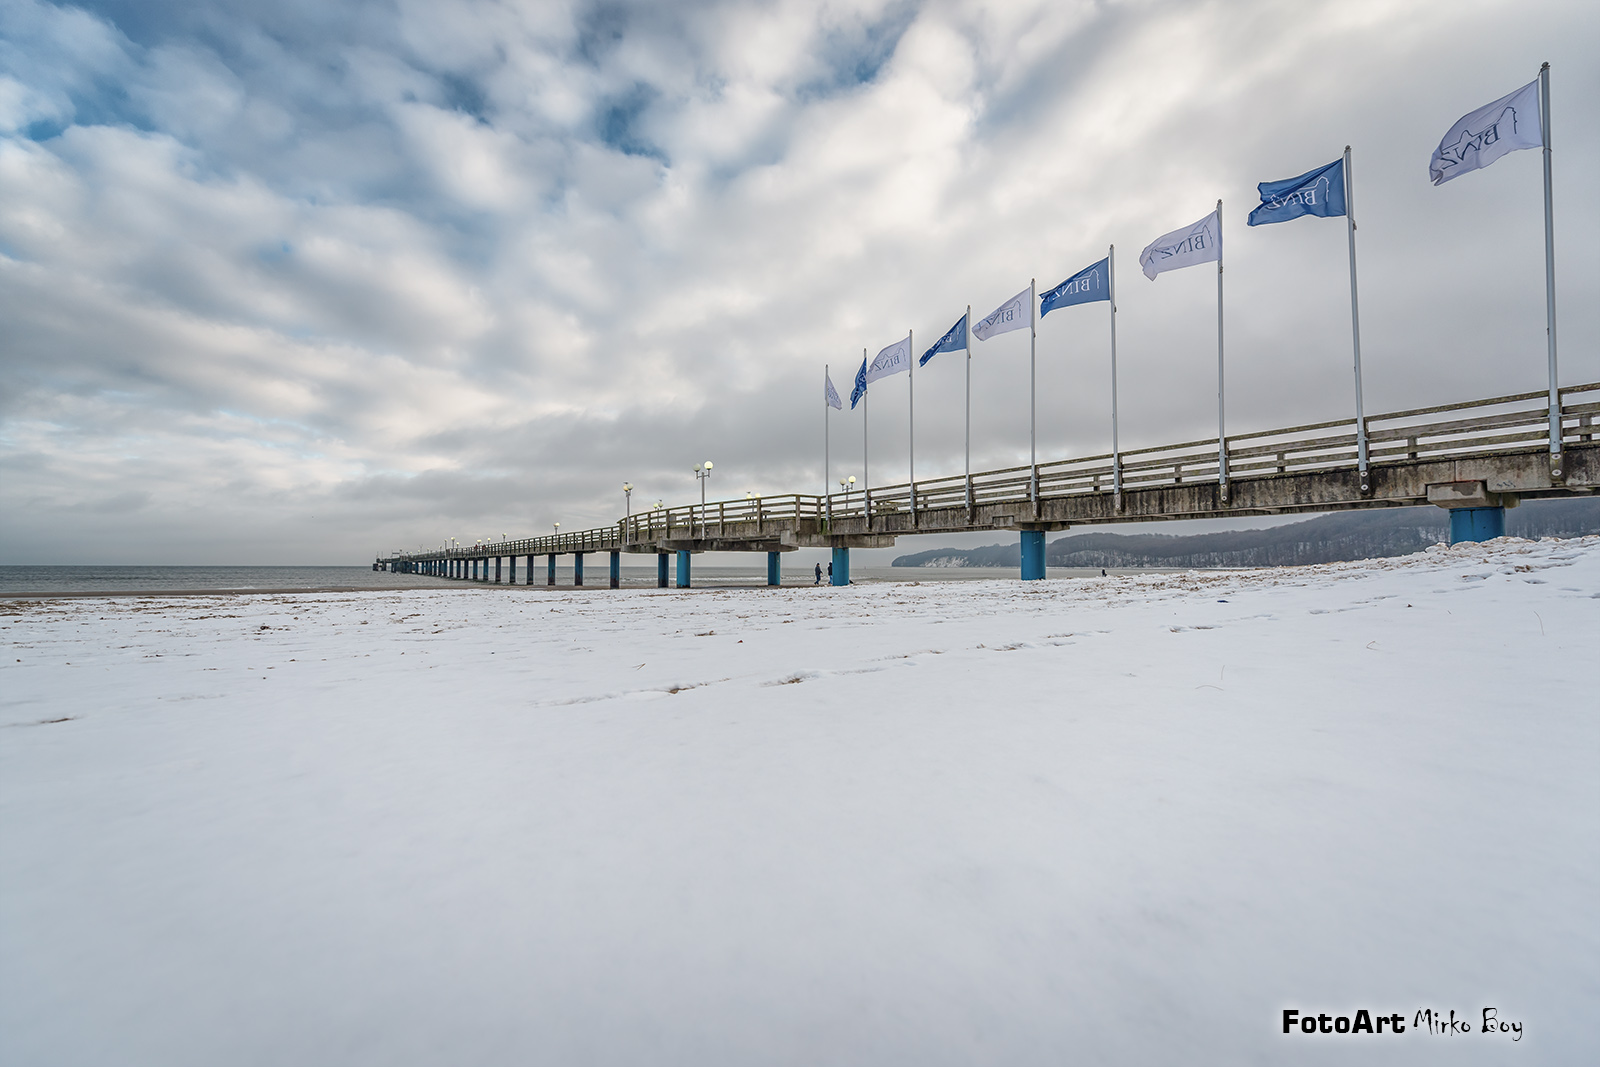 Winter Schnee in Binz